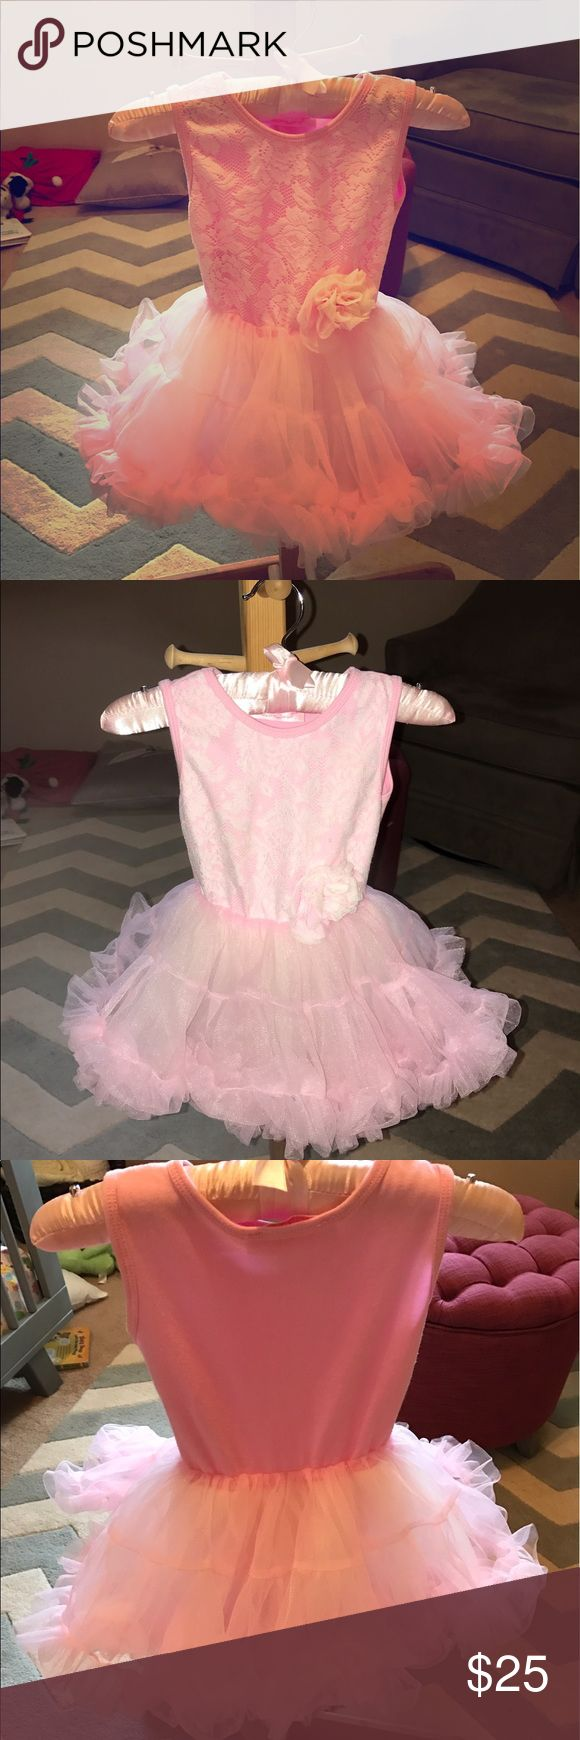 Pink Tutu Dress Like New! Worn once pink tutu dress used only for family pictures. Popatu Dresses